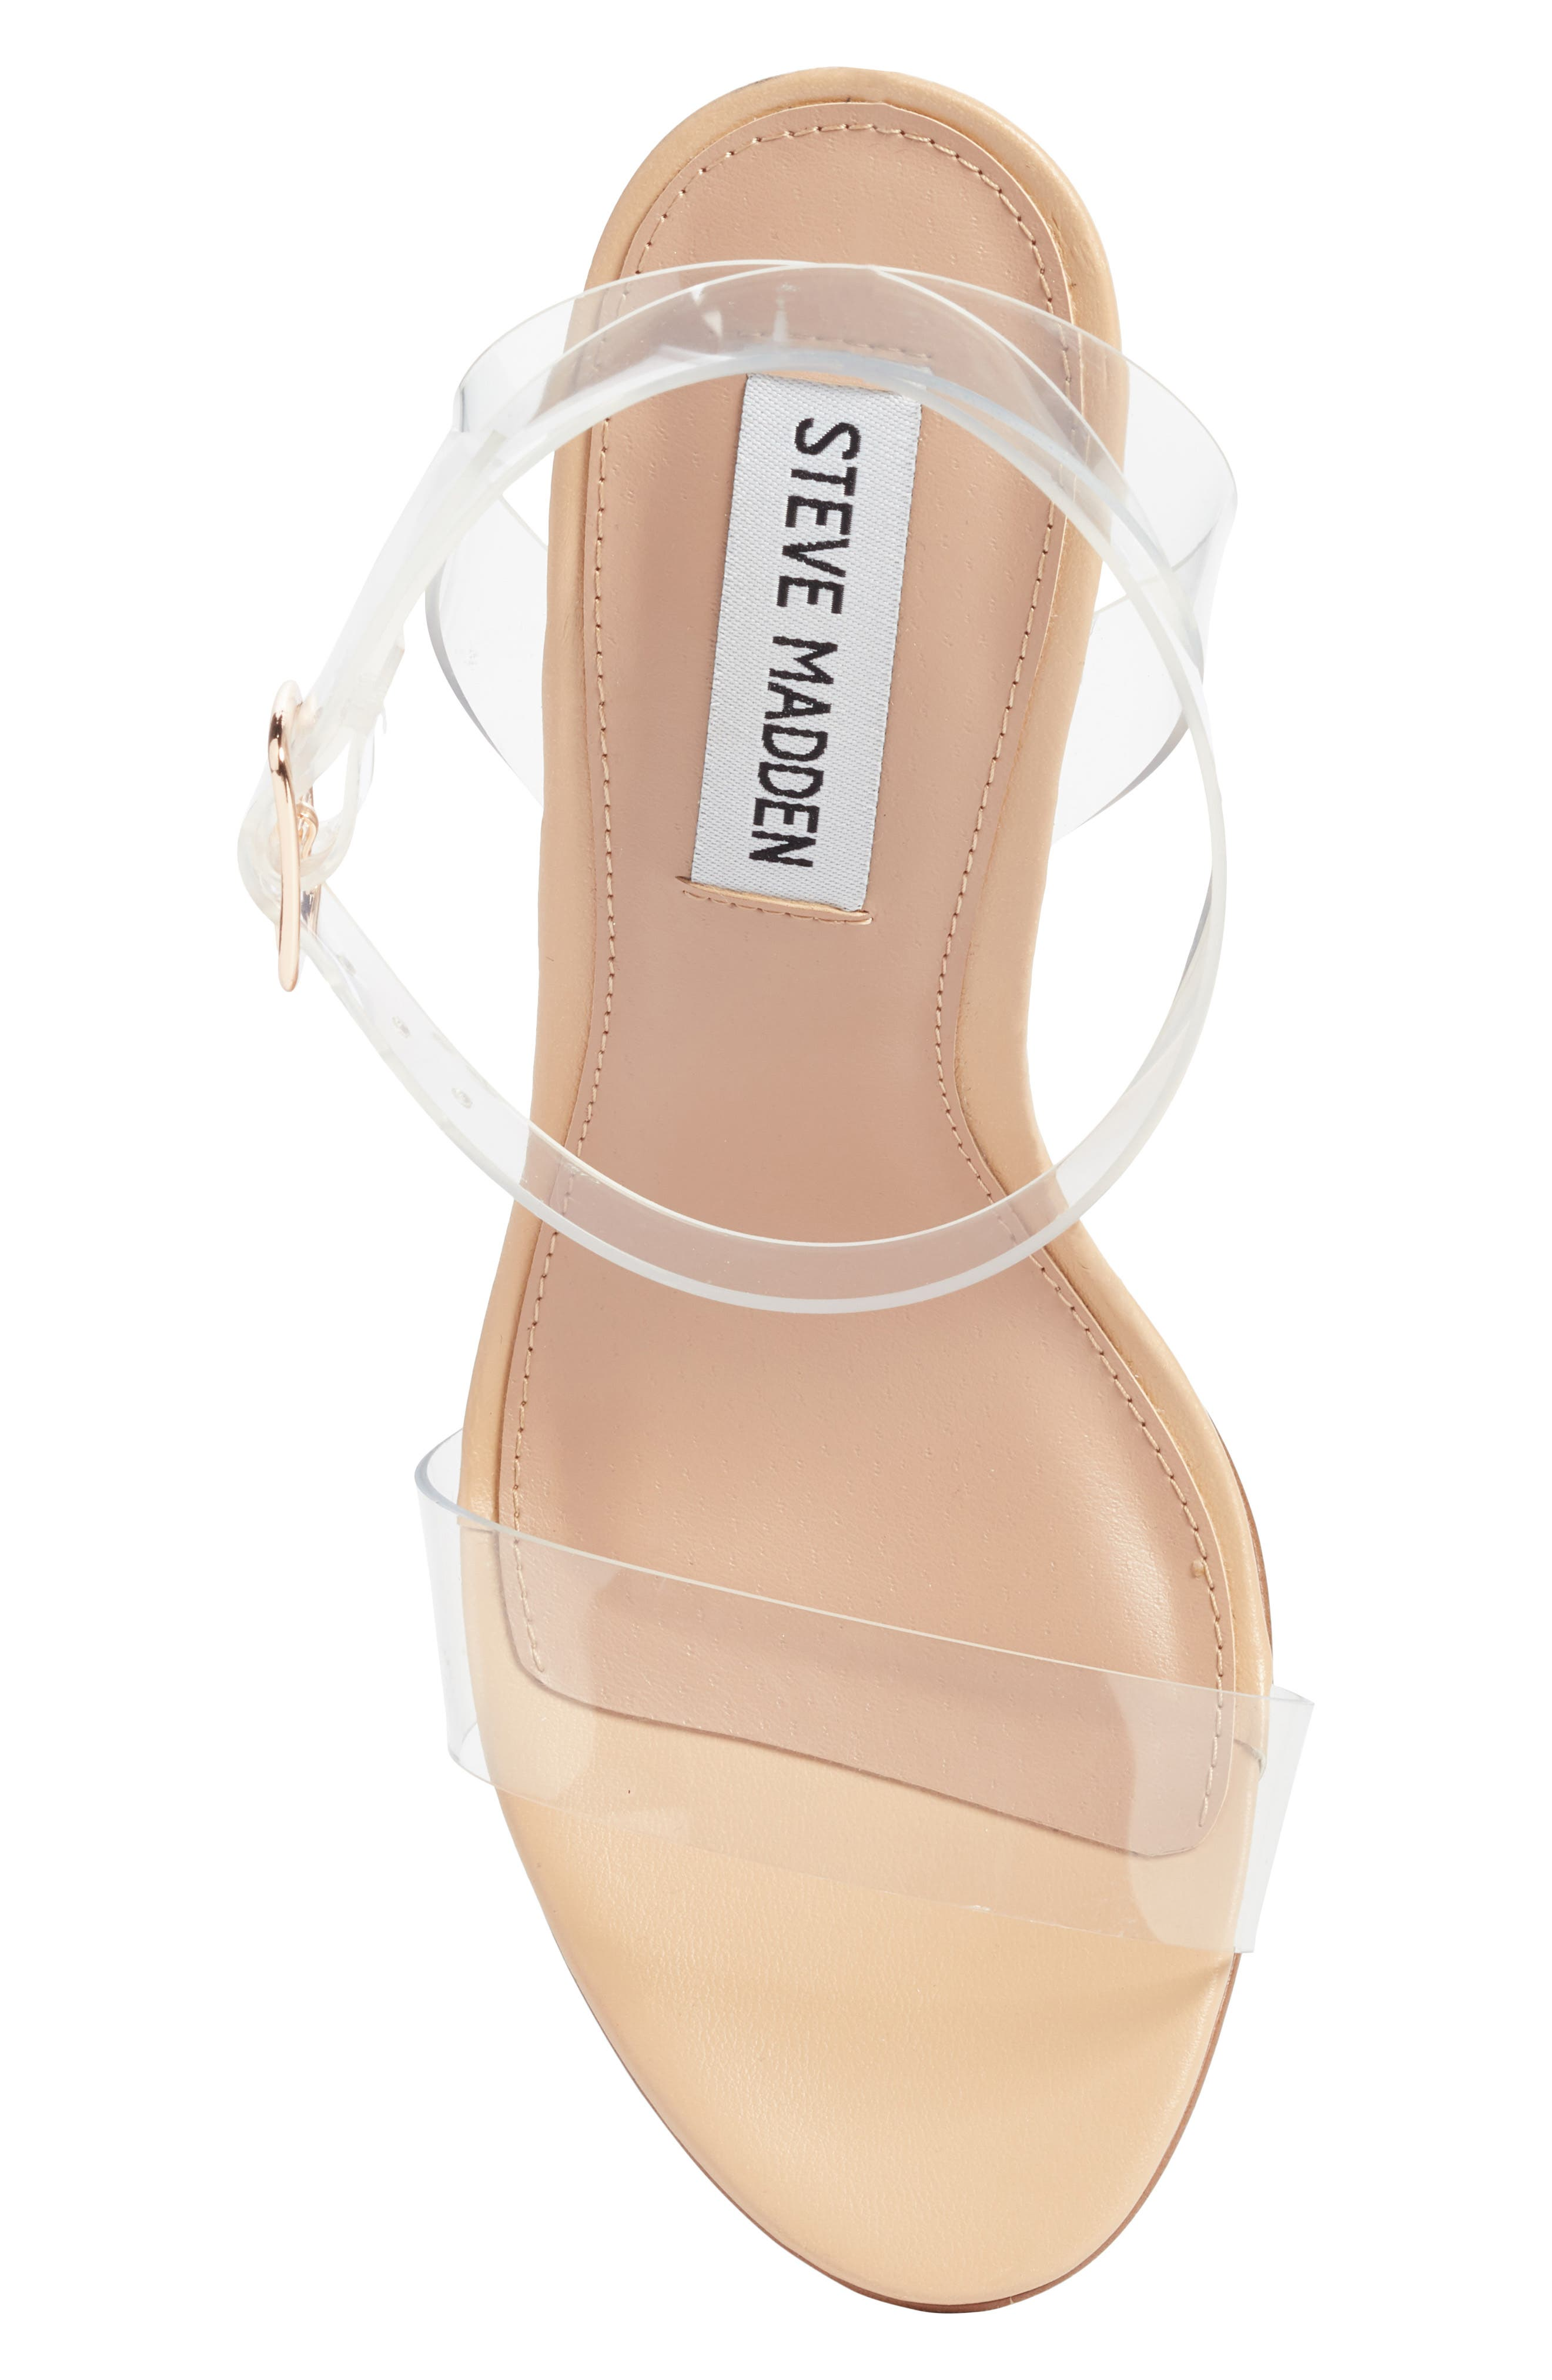 STEVE MADDEN, Camille Clear Sandal, Alternate thumbnail 5, color, CLEAR